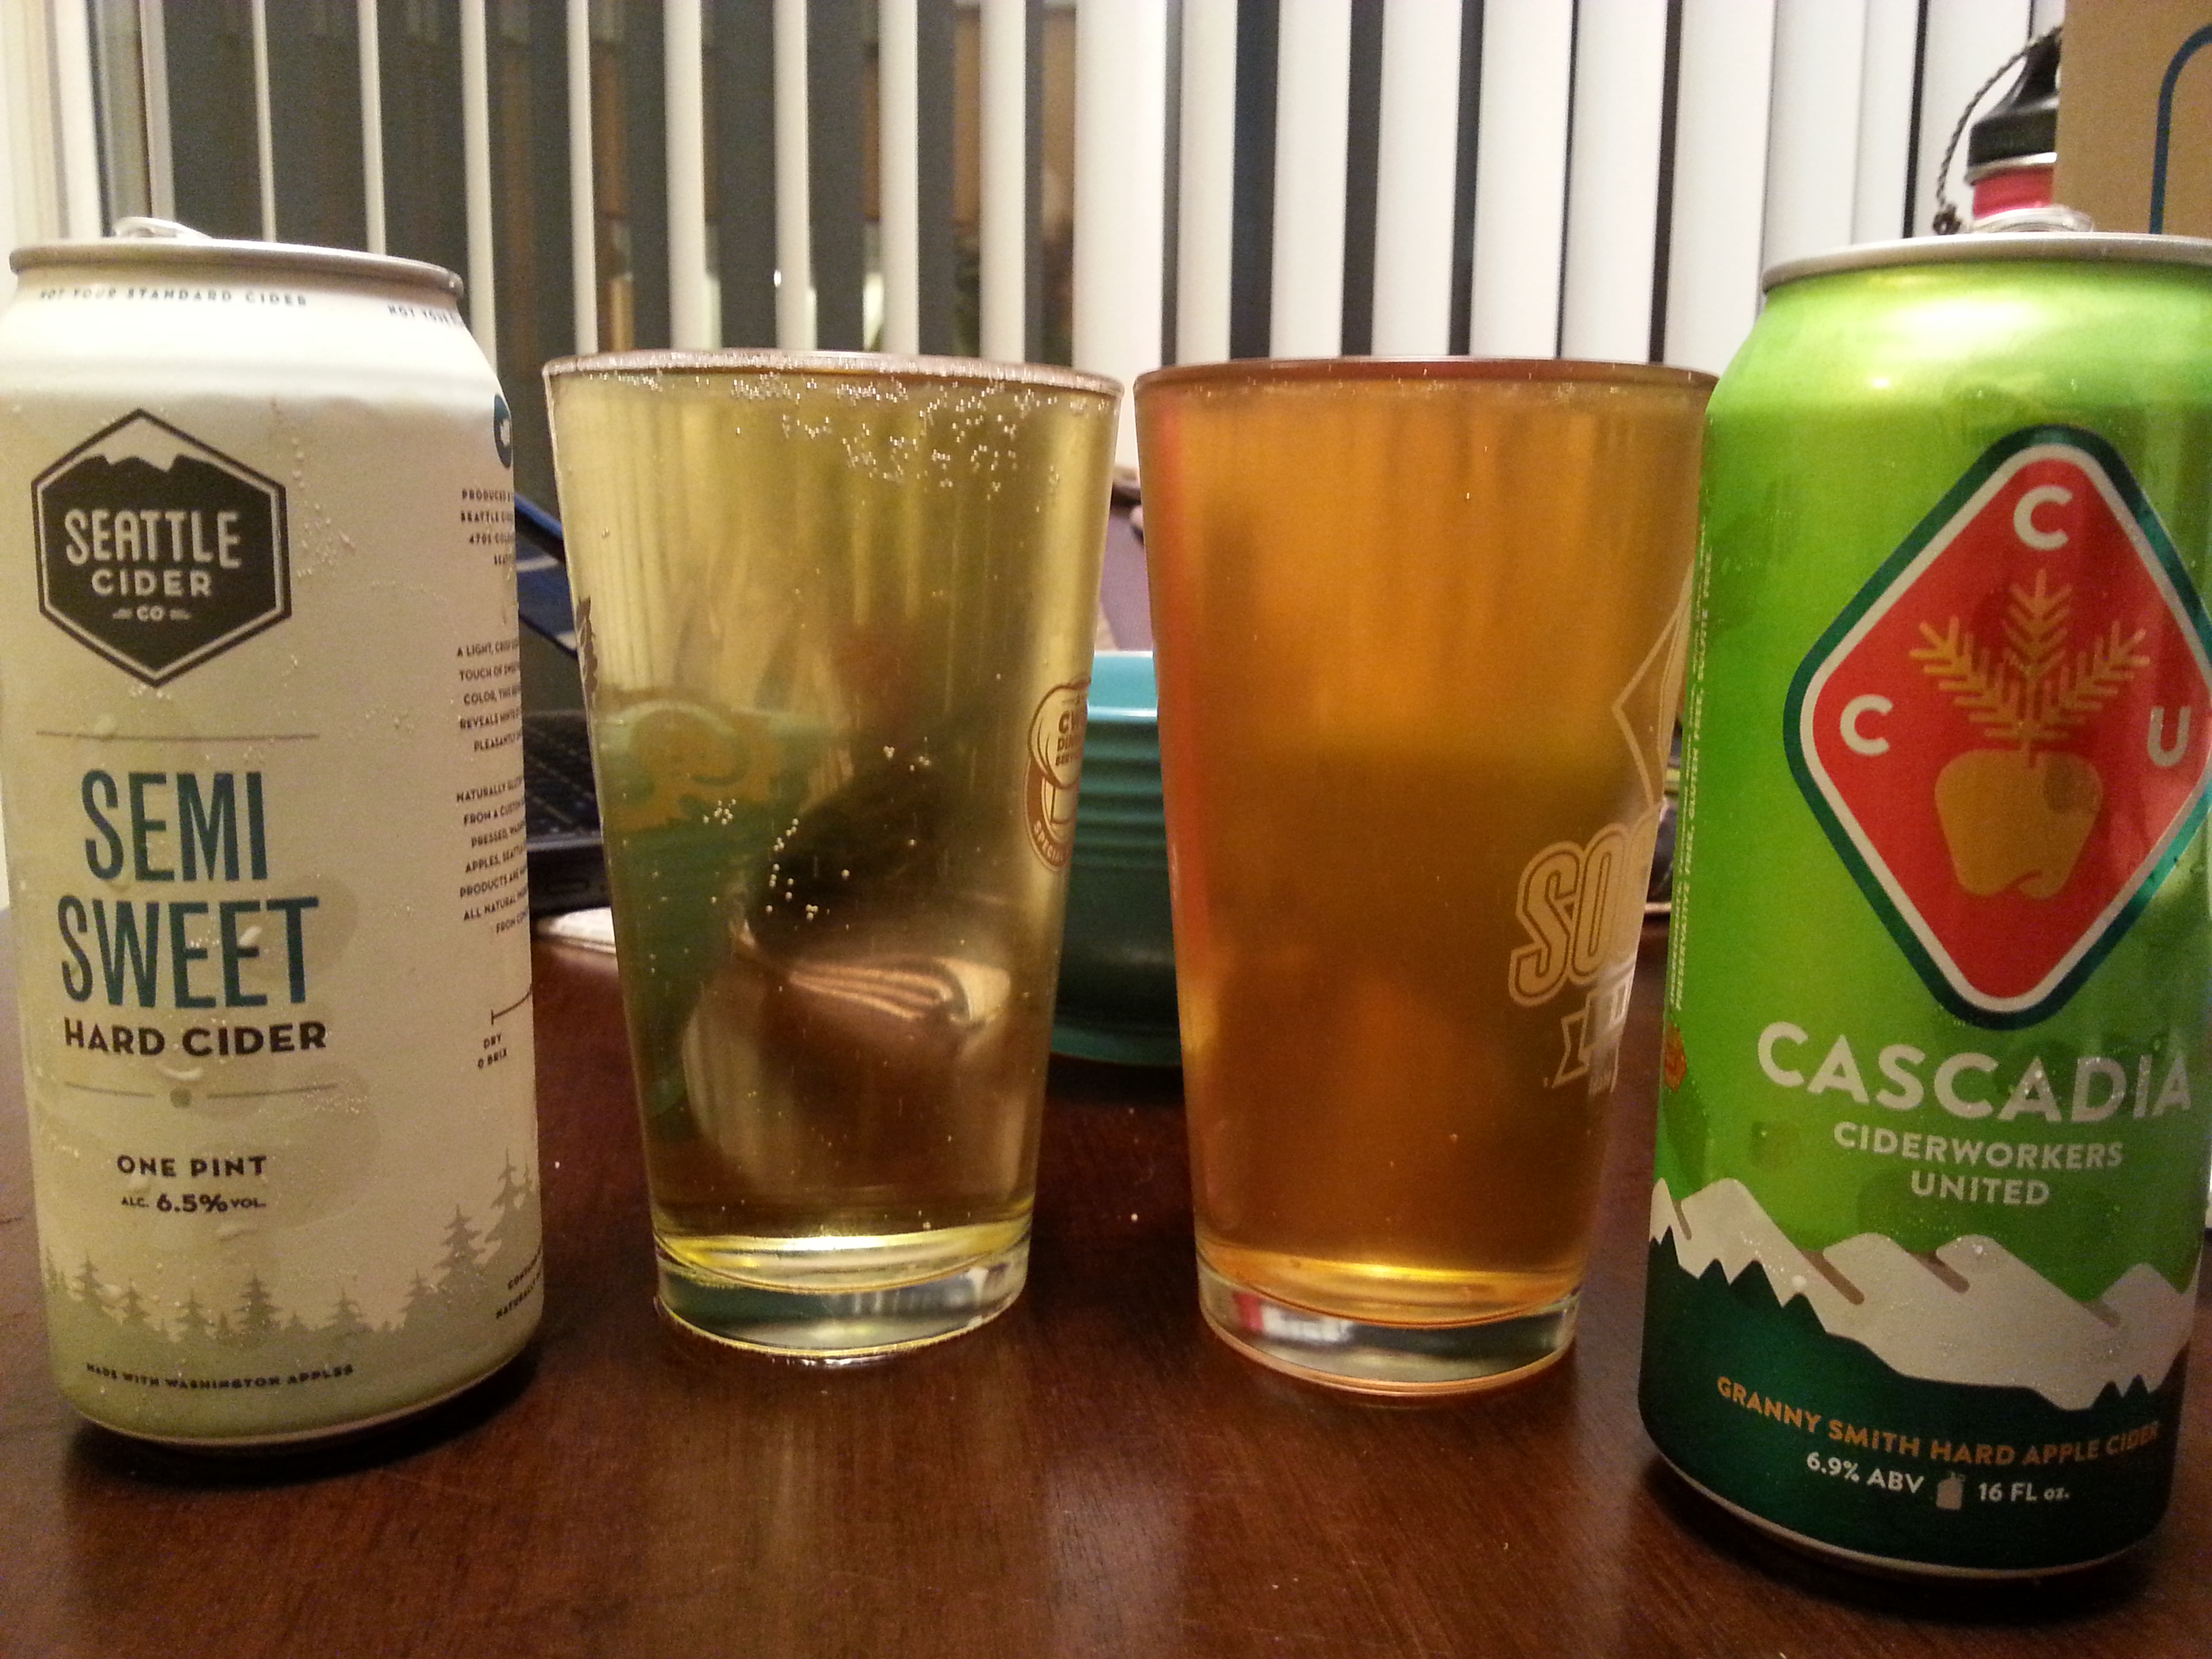 Two ciders to share with mom during moms weekend, Seattle Cider (left) and Cascadia (right). Silas Whitley | Crumbs